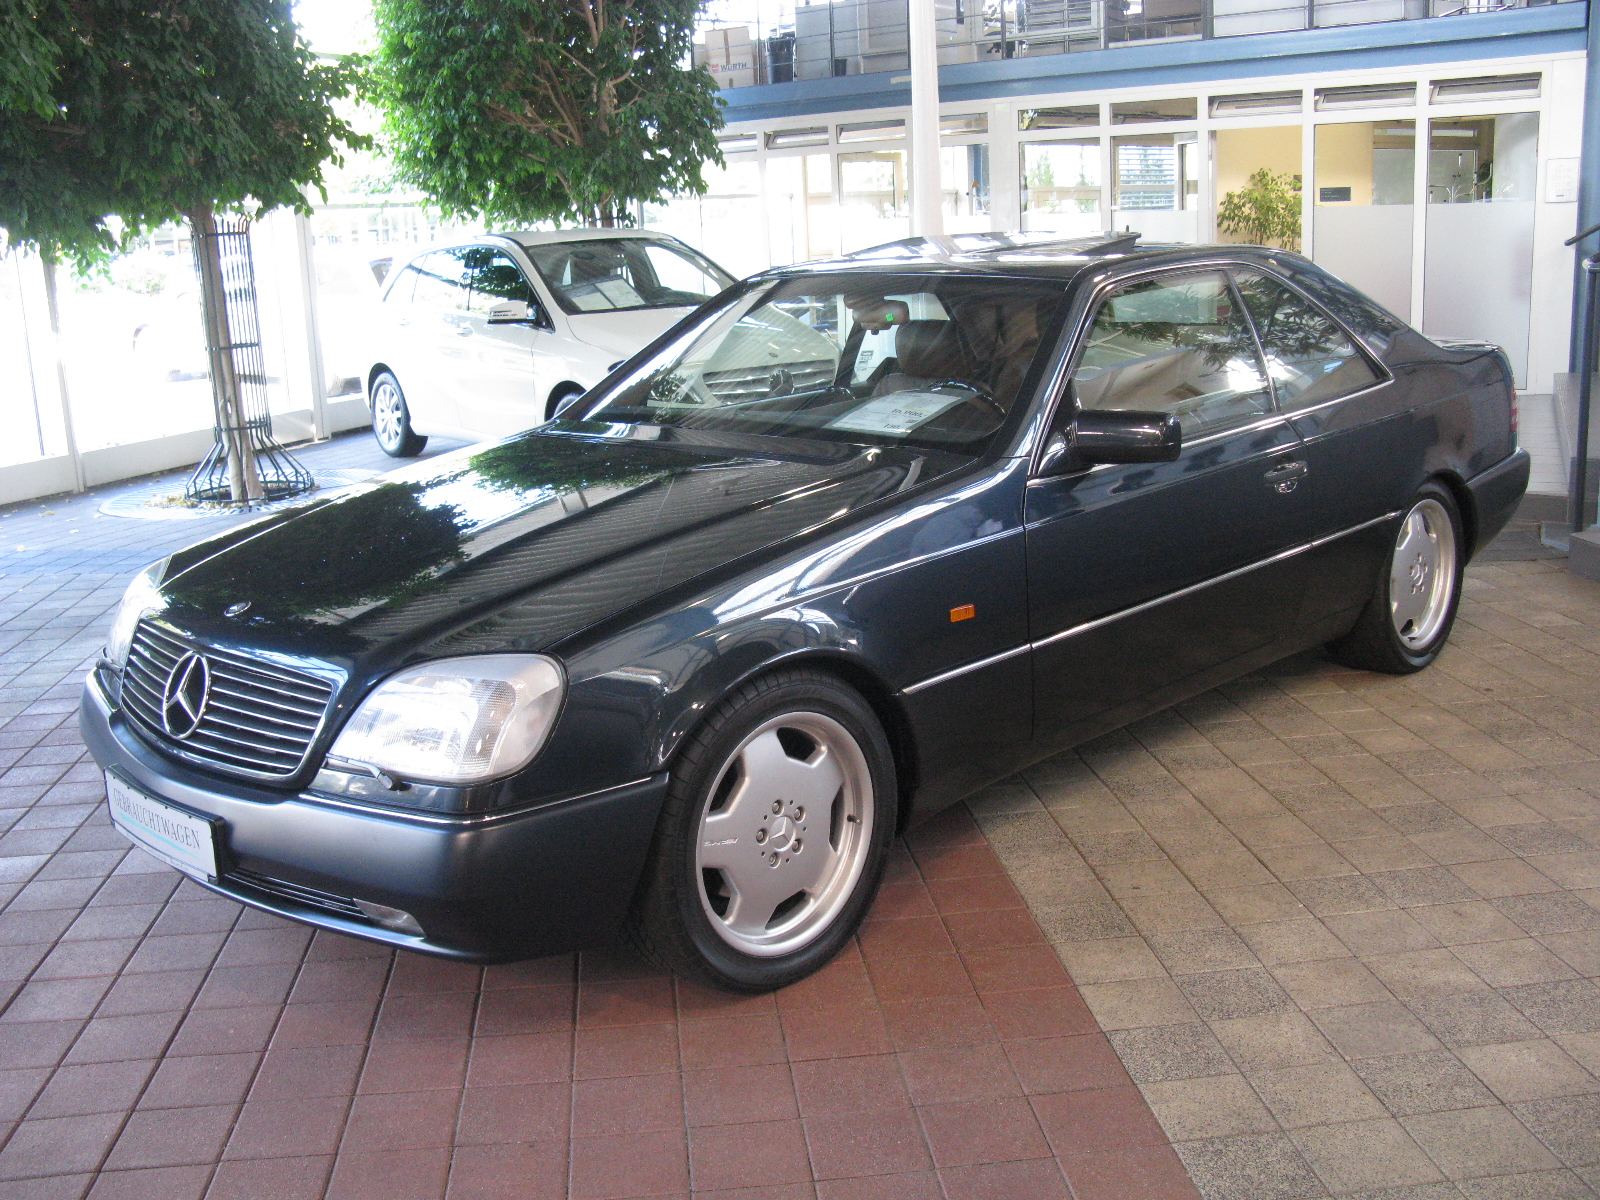 https://upload.wikimedia.org/wikipedia/commons/9/9c/Mercedes-Benz_S420_Coup%C3%A9_C140_%289972302303%29.jpg